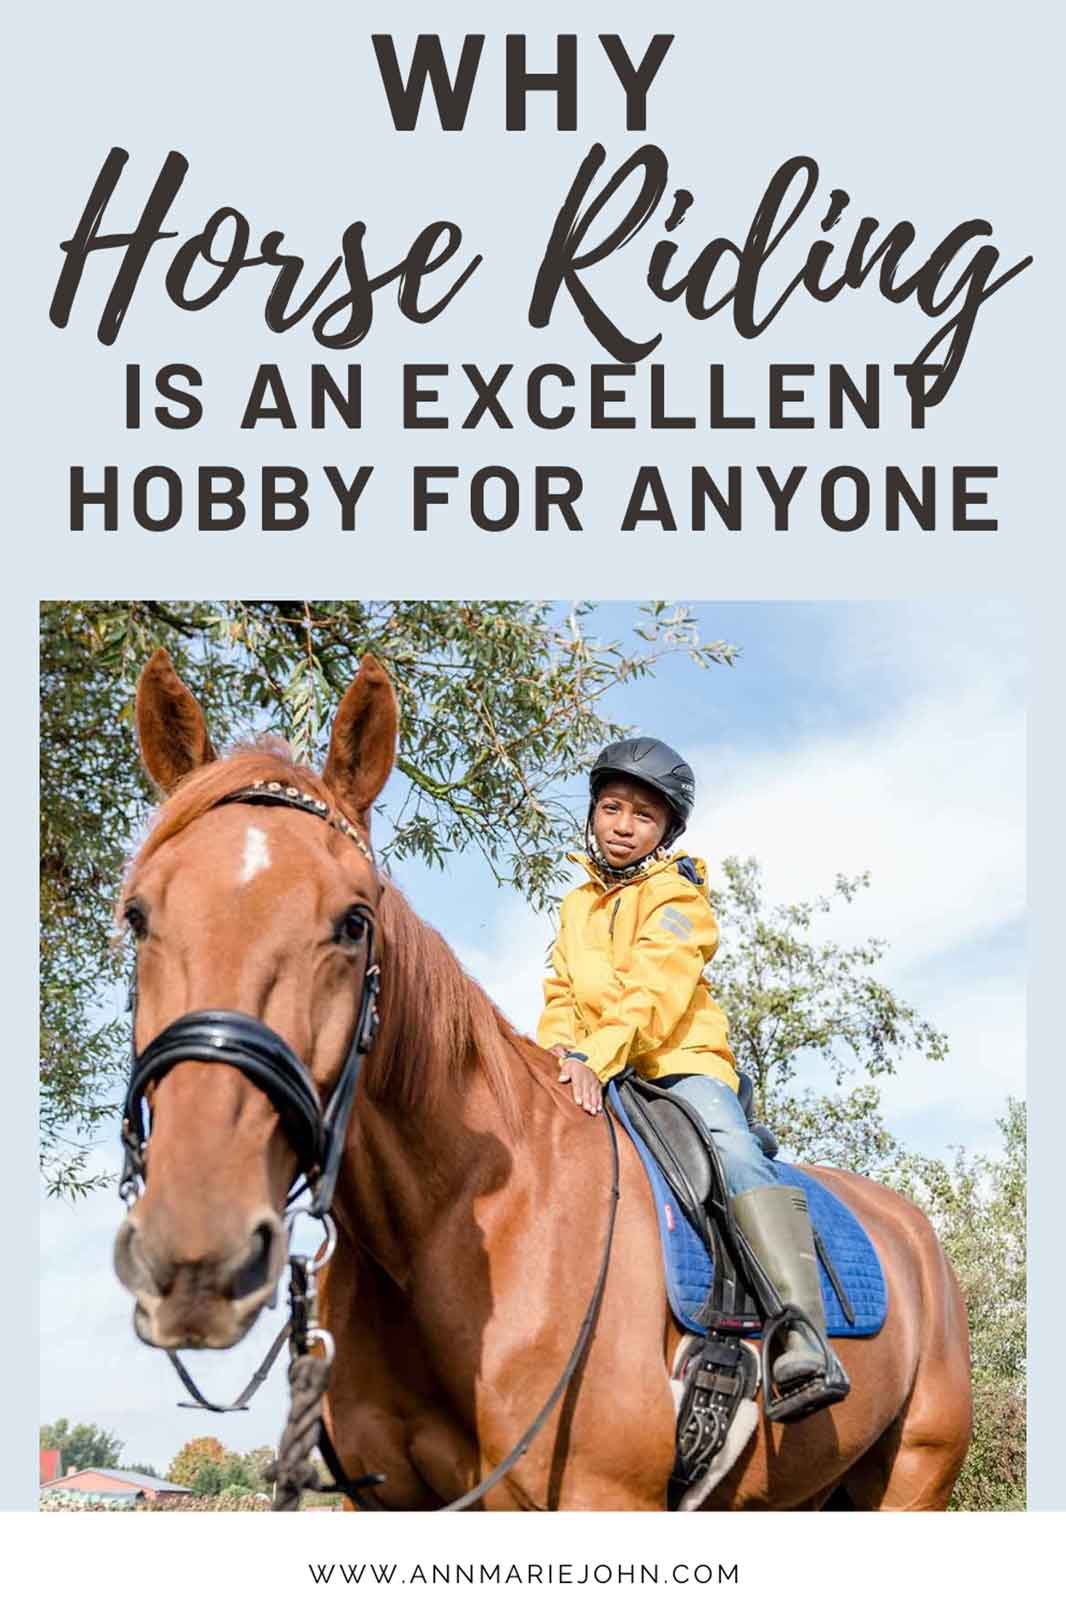 Why Horse Riding Is an Excellent Hobby for Anyone